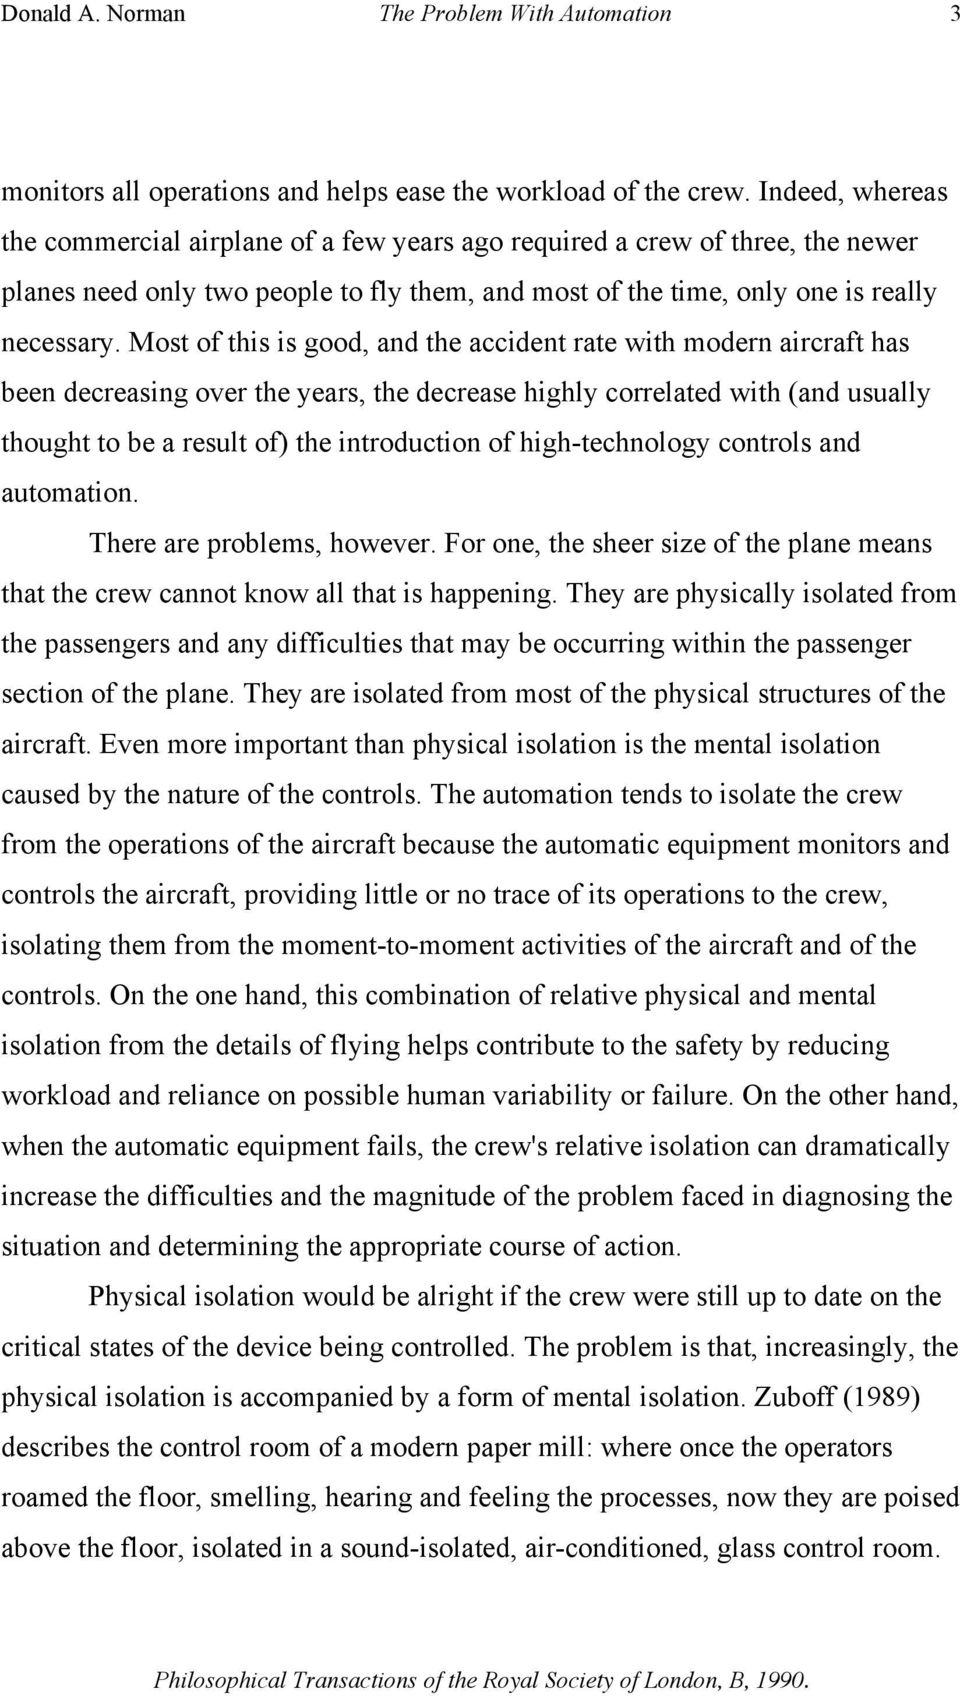 Most of this is good, and the accident rate with modern aircraft has been decreasing over the years, the decrease highly correlated with (and usually thought to be a result of) the introduction of